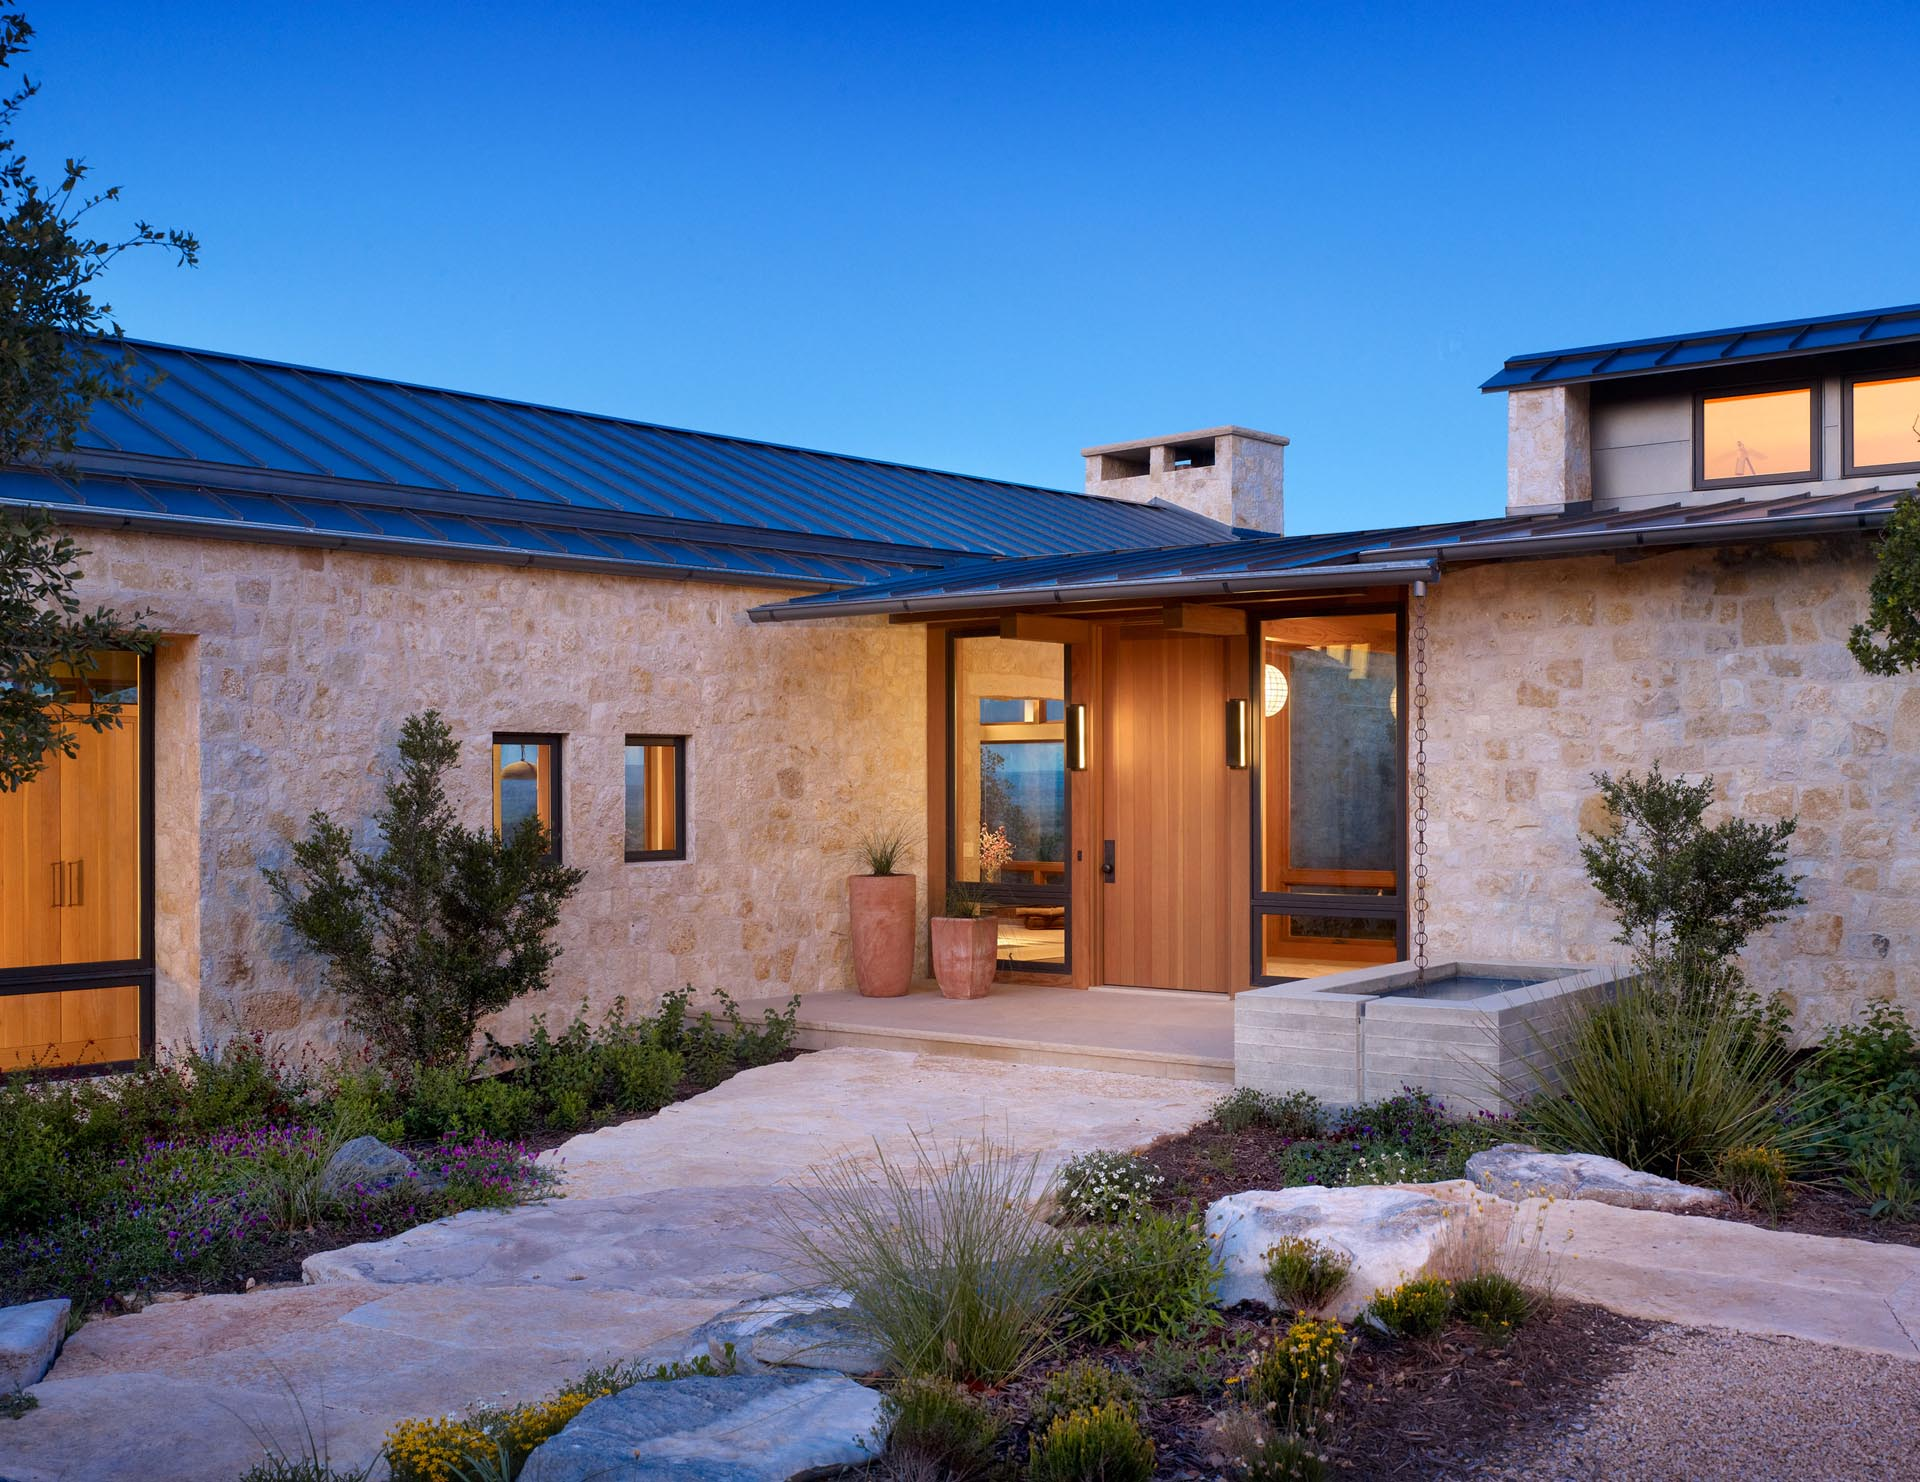 This contemporary home includes limestone walls, a metal roof, black window frames, and a landscaped path to the wood front door.